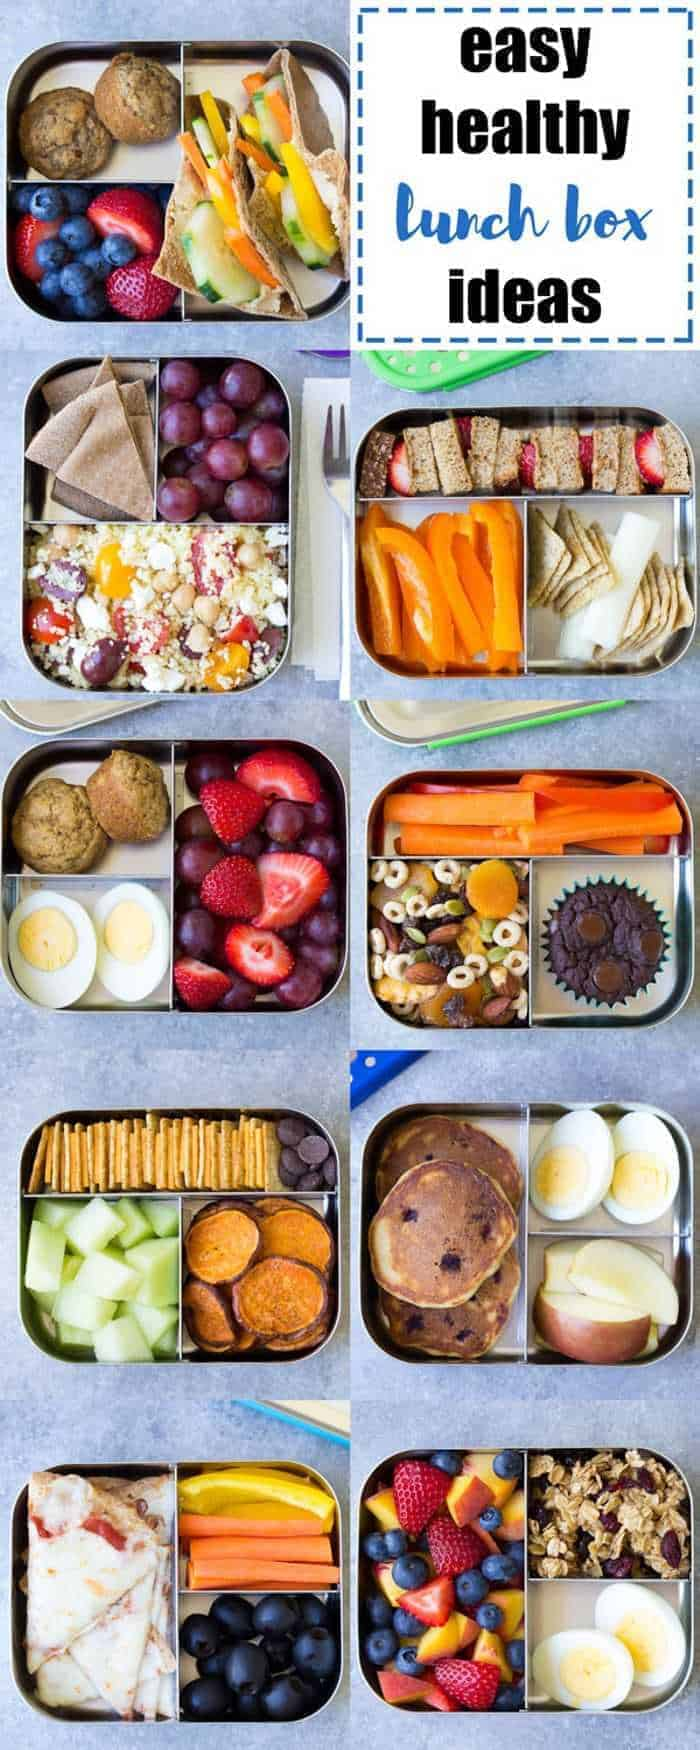 10 Work Lunch Box Ideas